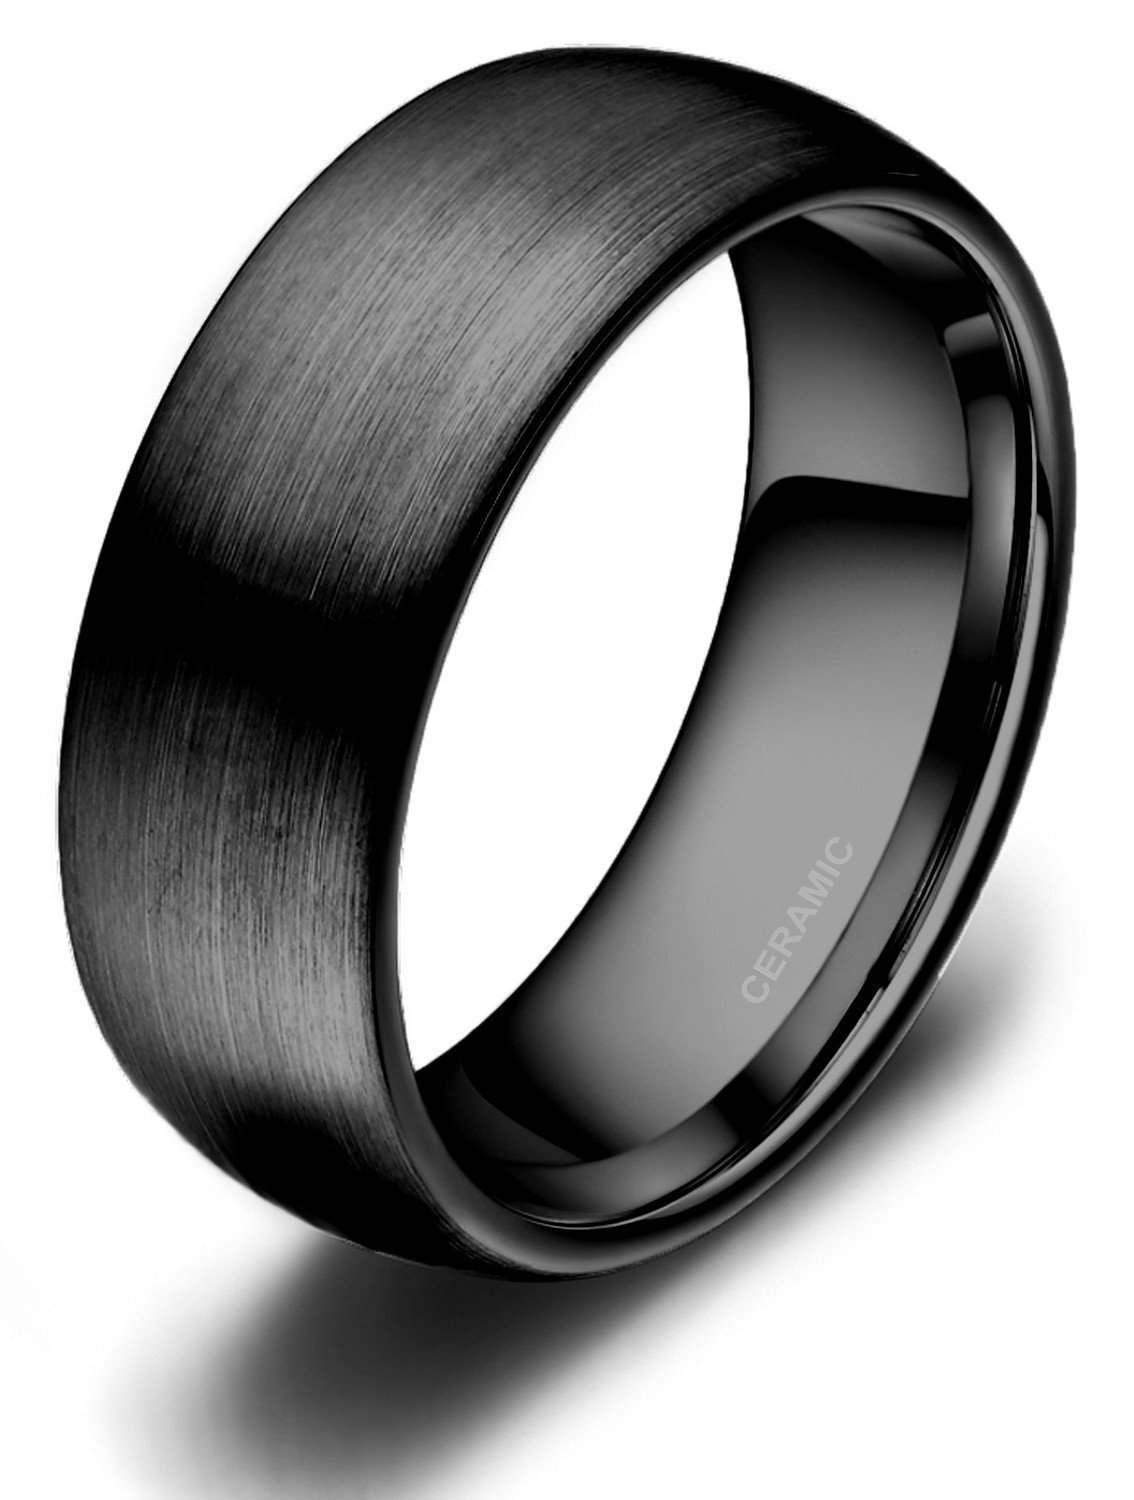 Black Ceramic Rings Brushed Comfort Fit Engagement Wedding Band,metal type 8mm ,size 11